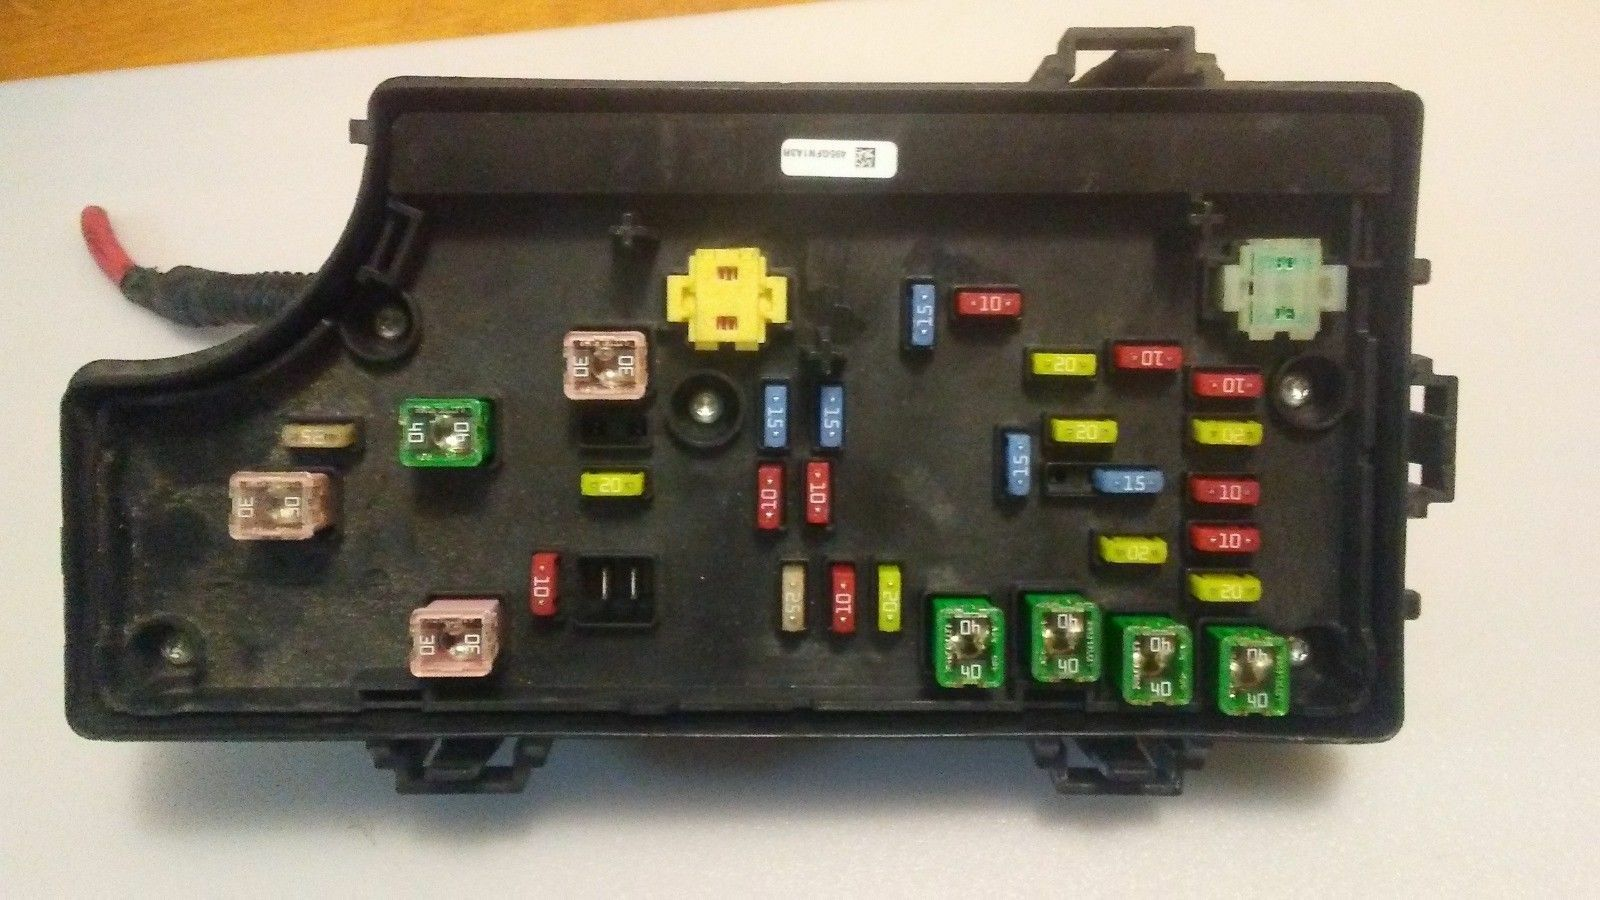 2007 2010 Chrysler Sebring Tipm Totally Integrated Power Fuse Box 1998 P04692168al 1 Of 2only 2 Available